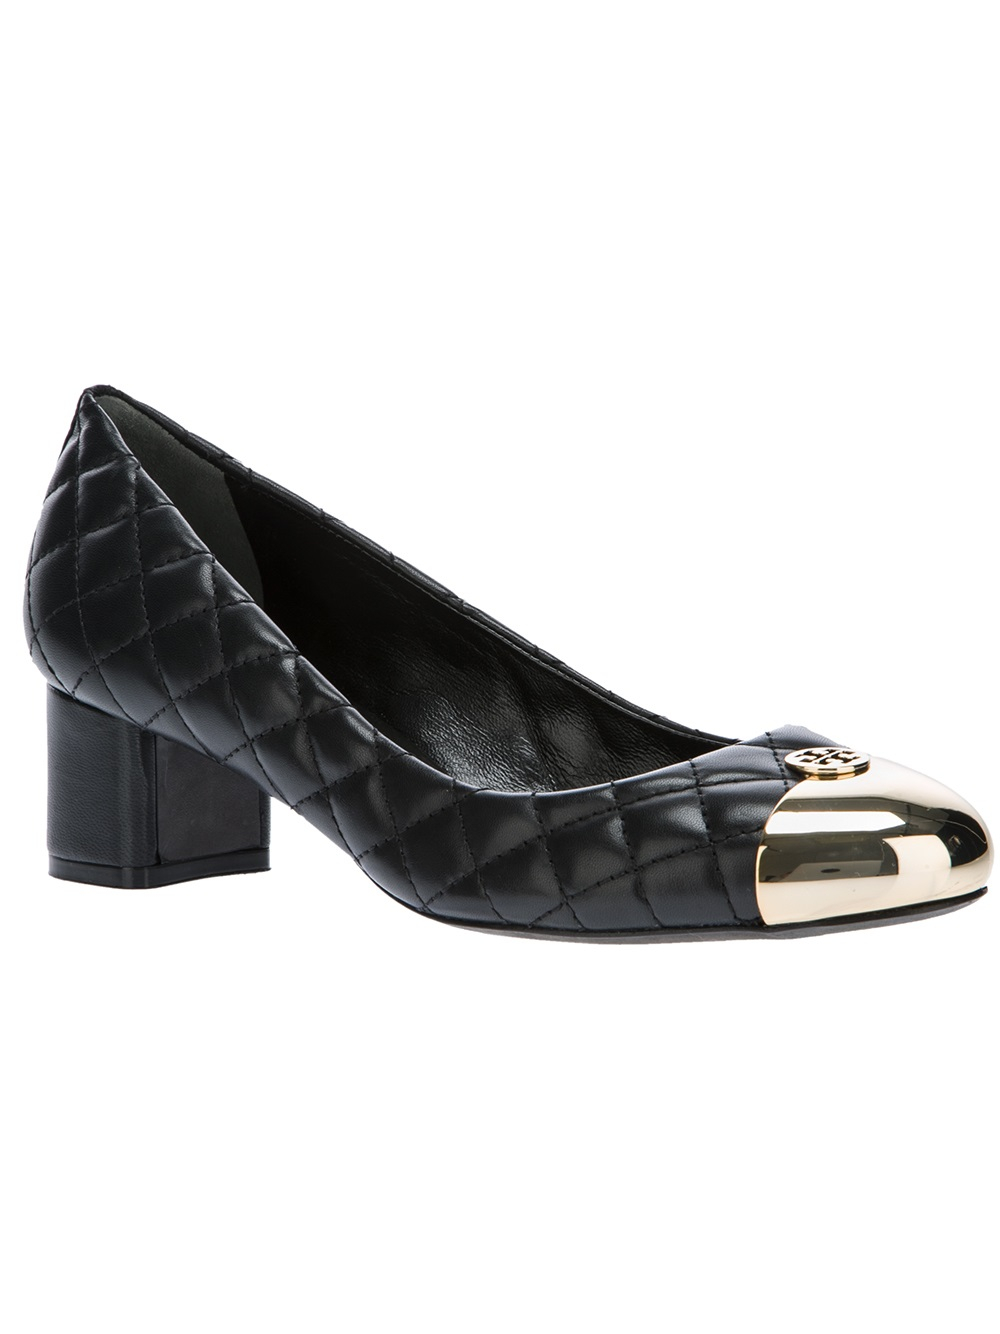 03135e529384 Lyst - Tory Burch Kaitlin Quilted Pump in Black